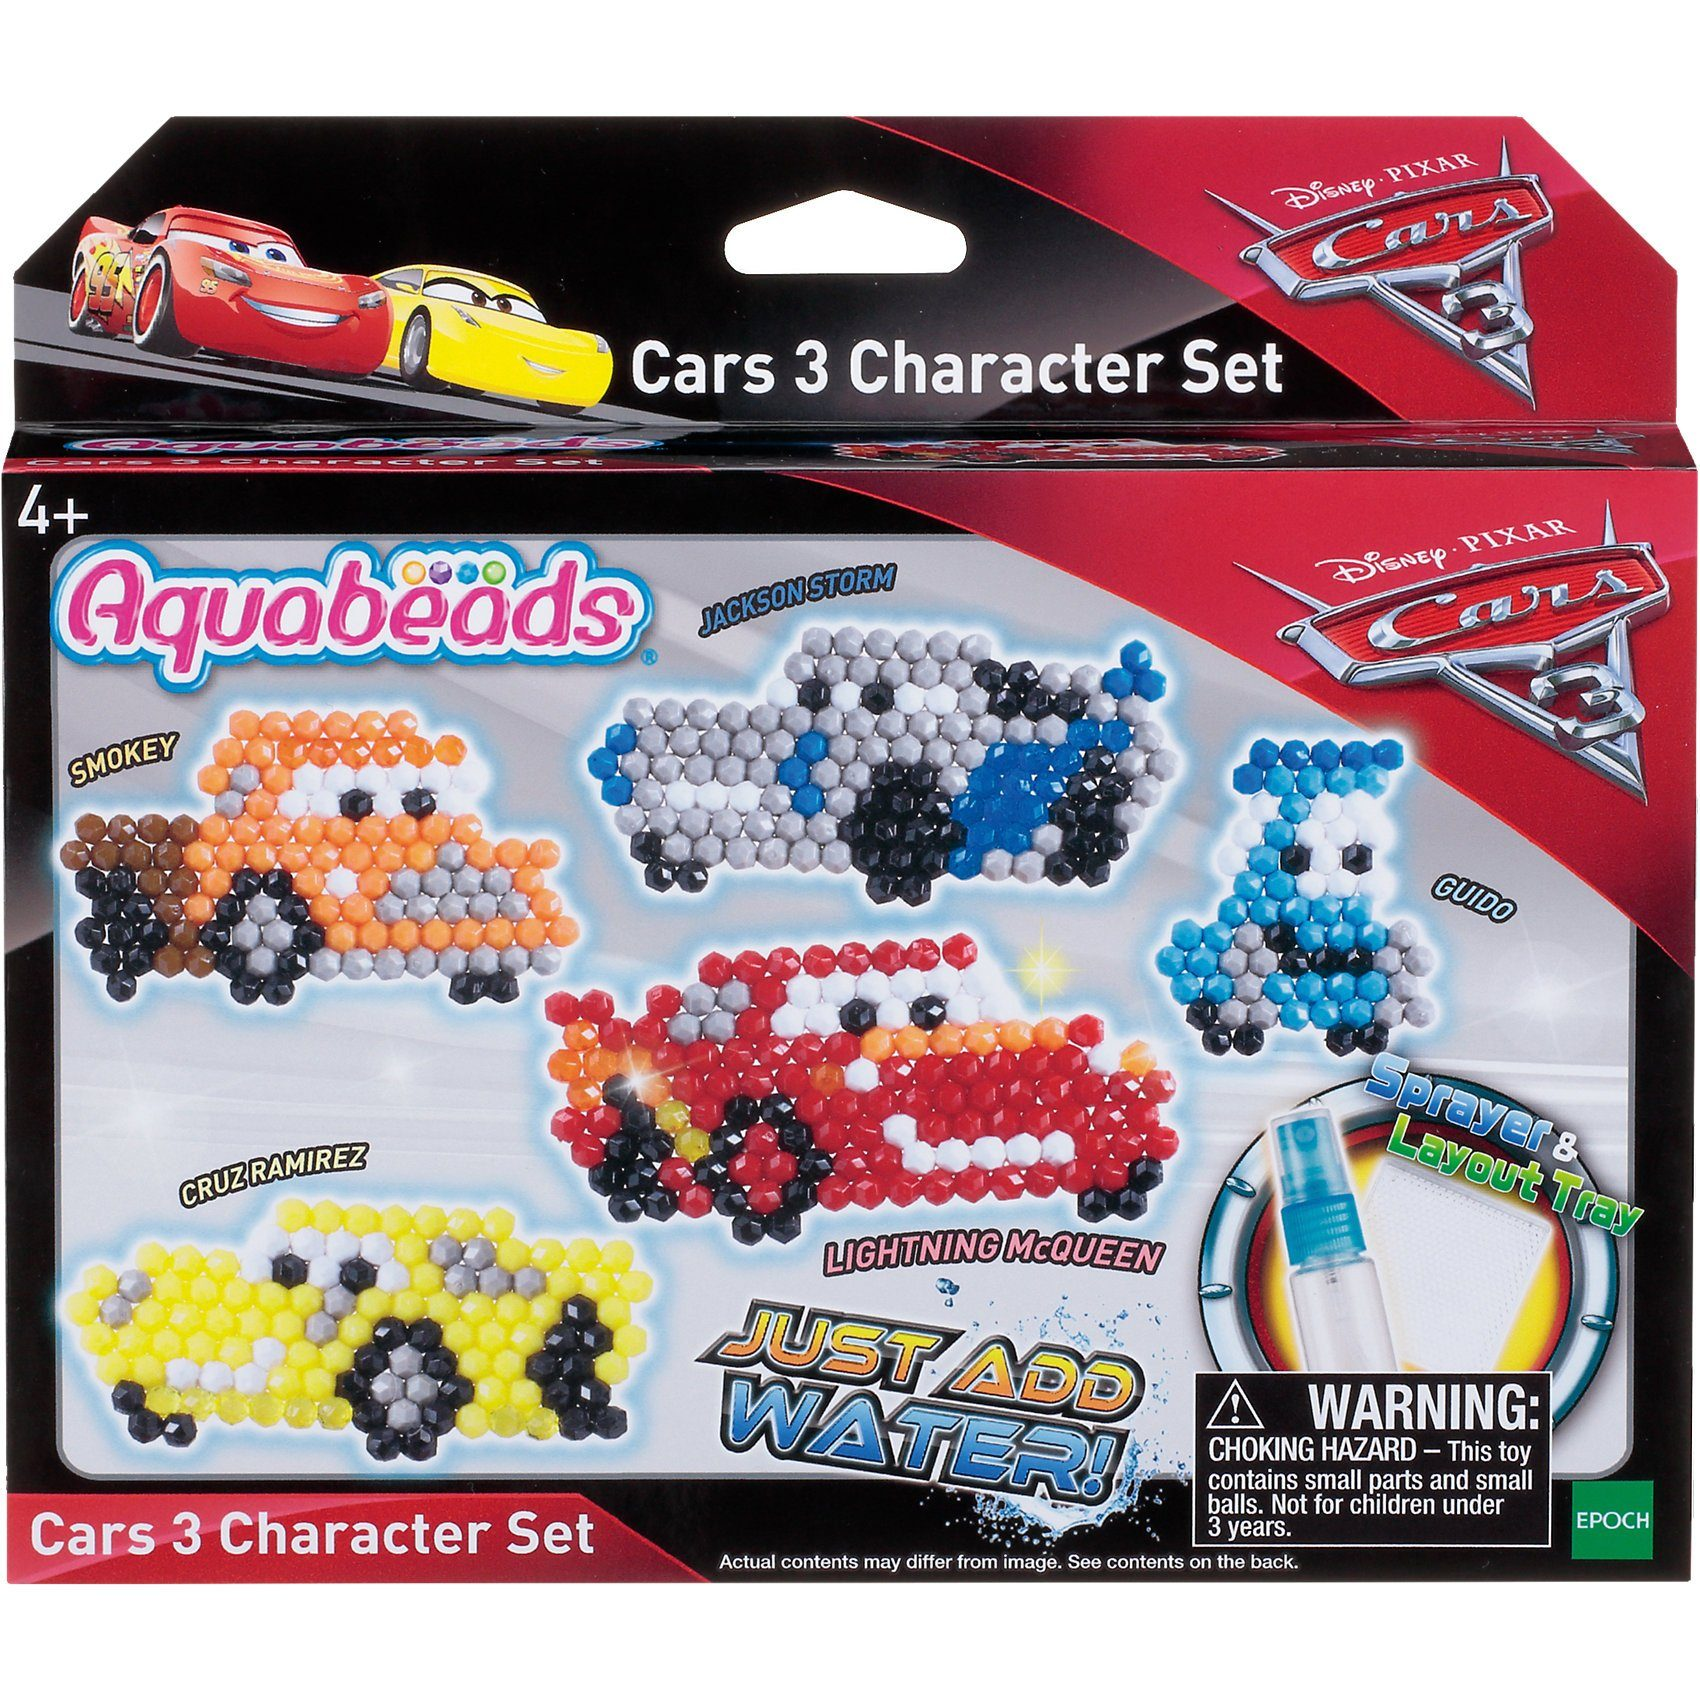 Epoch Traumwiesen Aquabeads Cars 3 Figurenset